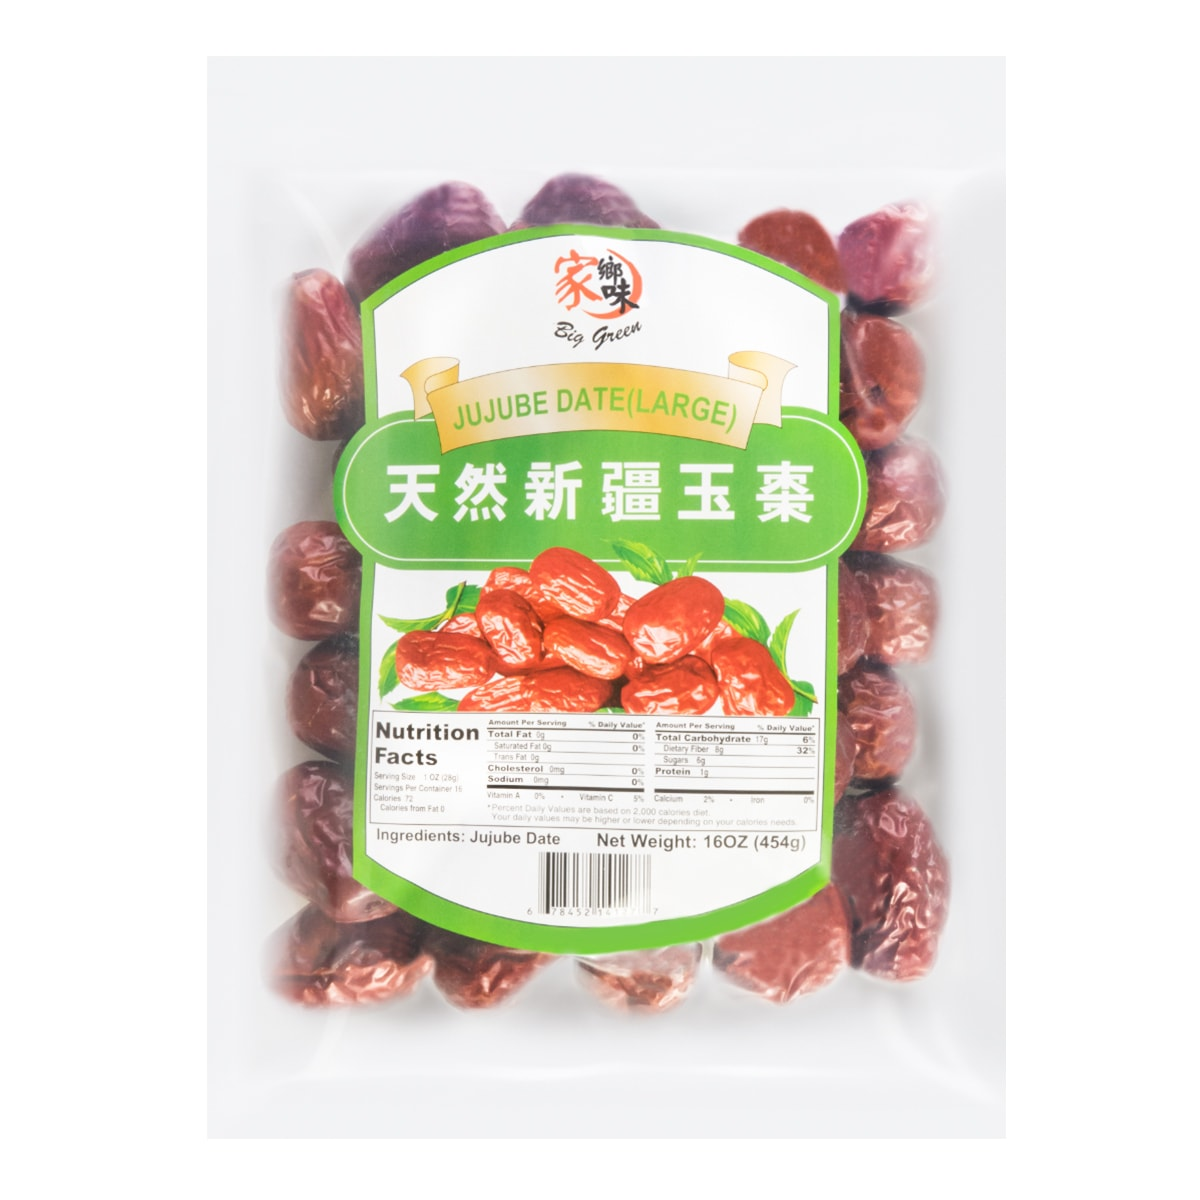 BIG GREEN Large Jujube Date 454g